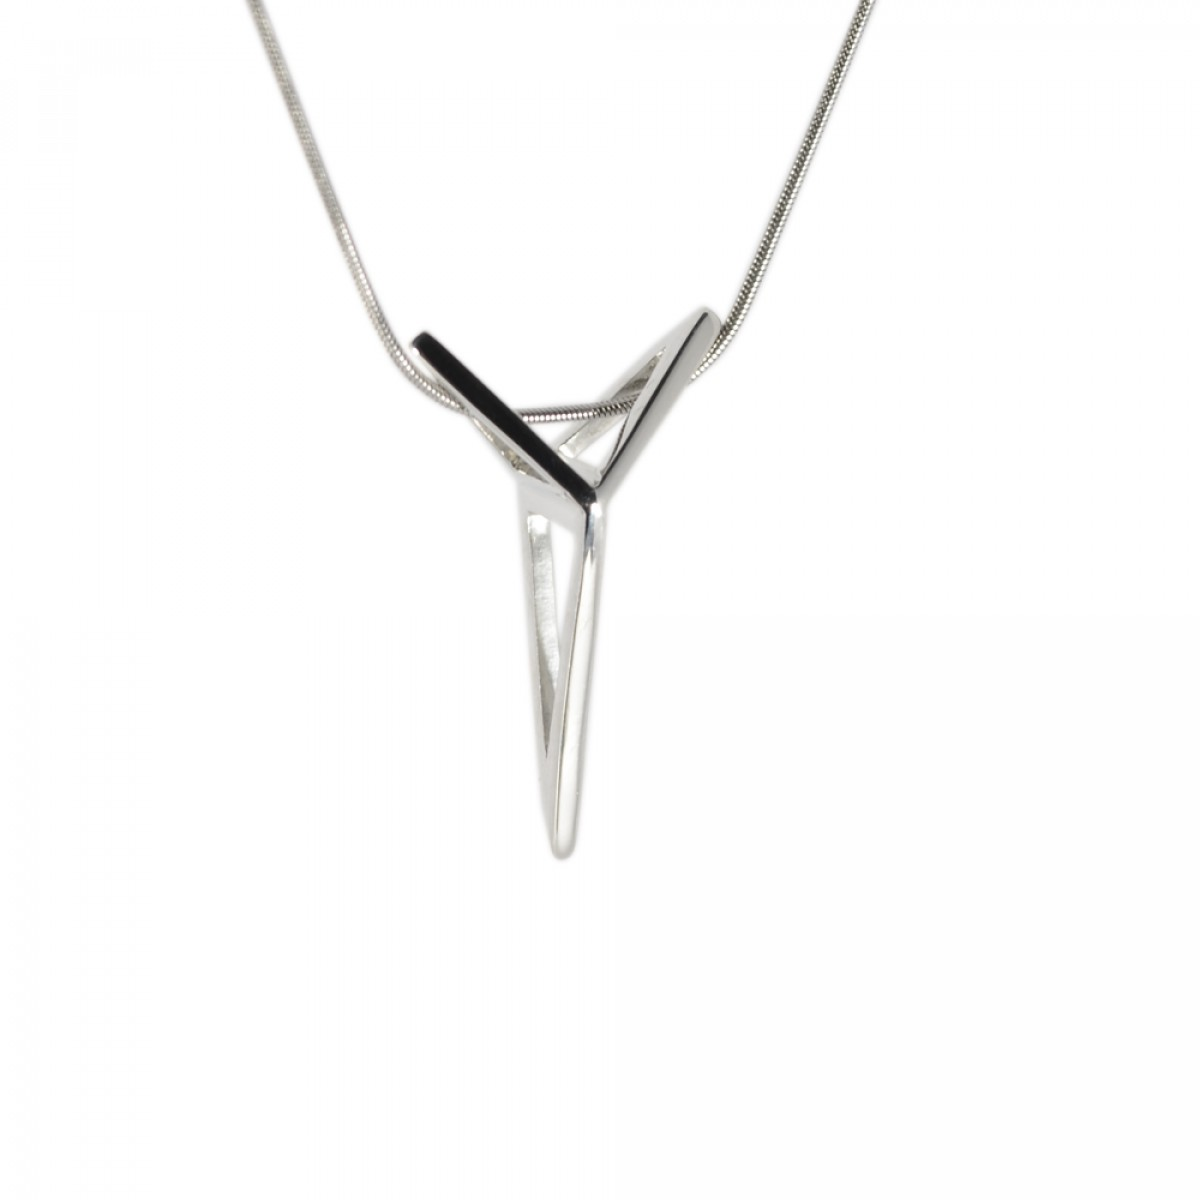 SPACE JEWELS. YOUNIVERSAL Origami, Halskette. Minimalistic Sharp Chic